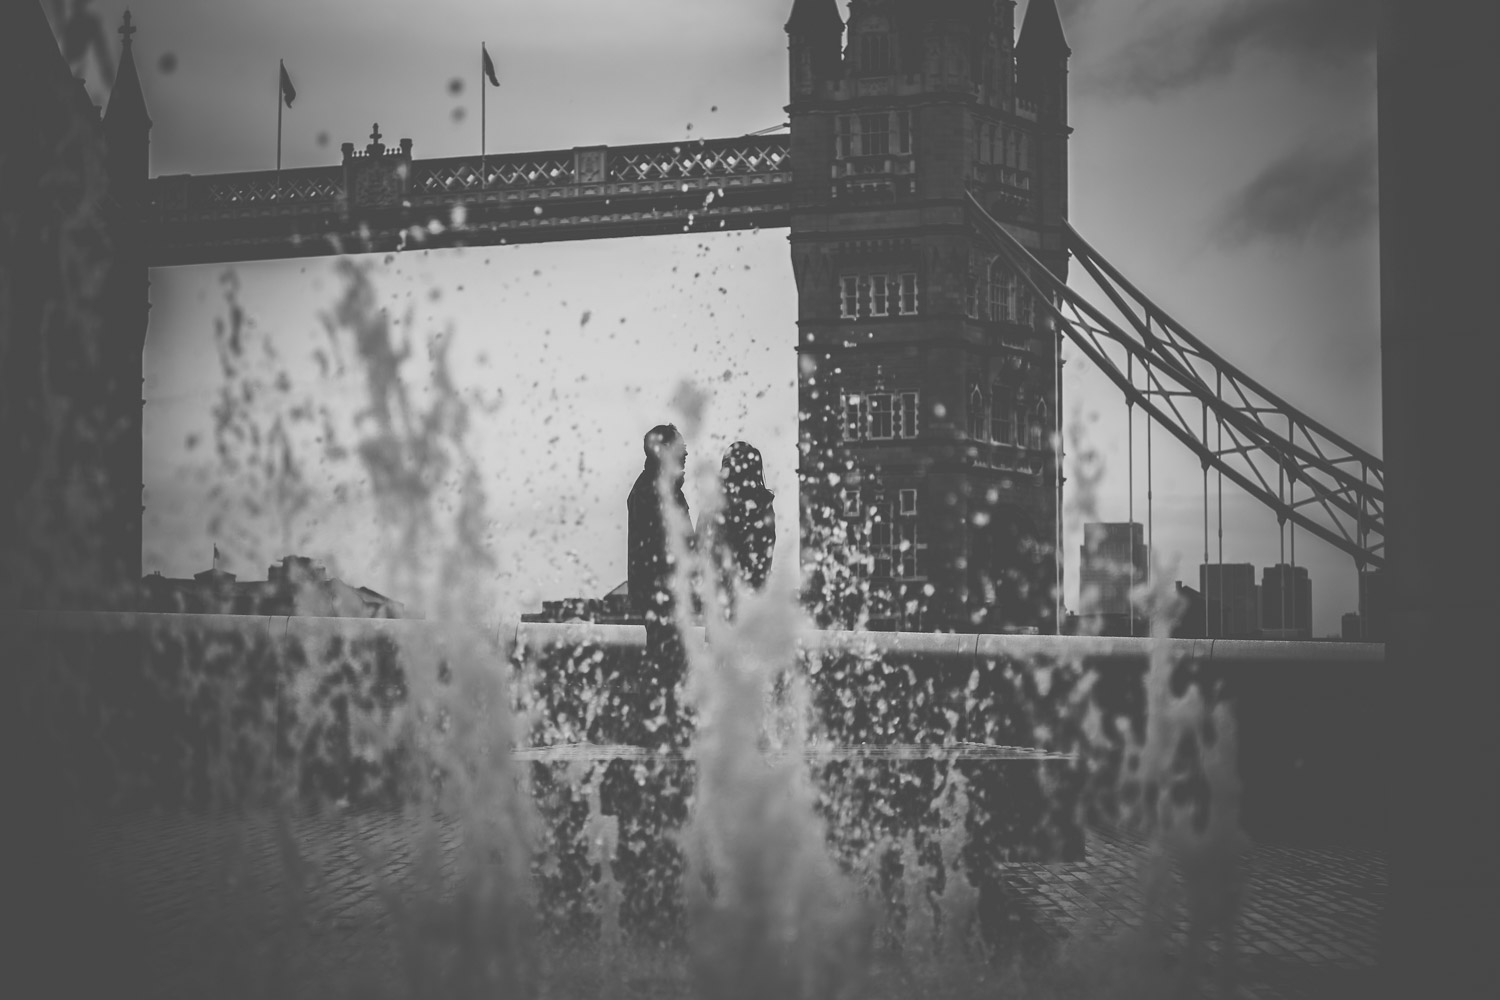 pre-wedding-engagement-session-in-london-portchester-and-notting-hill-hampshire-wedding-photographer-19.jpg